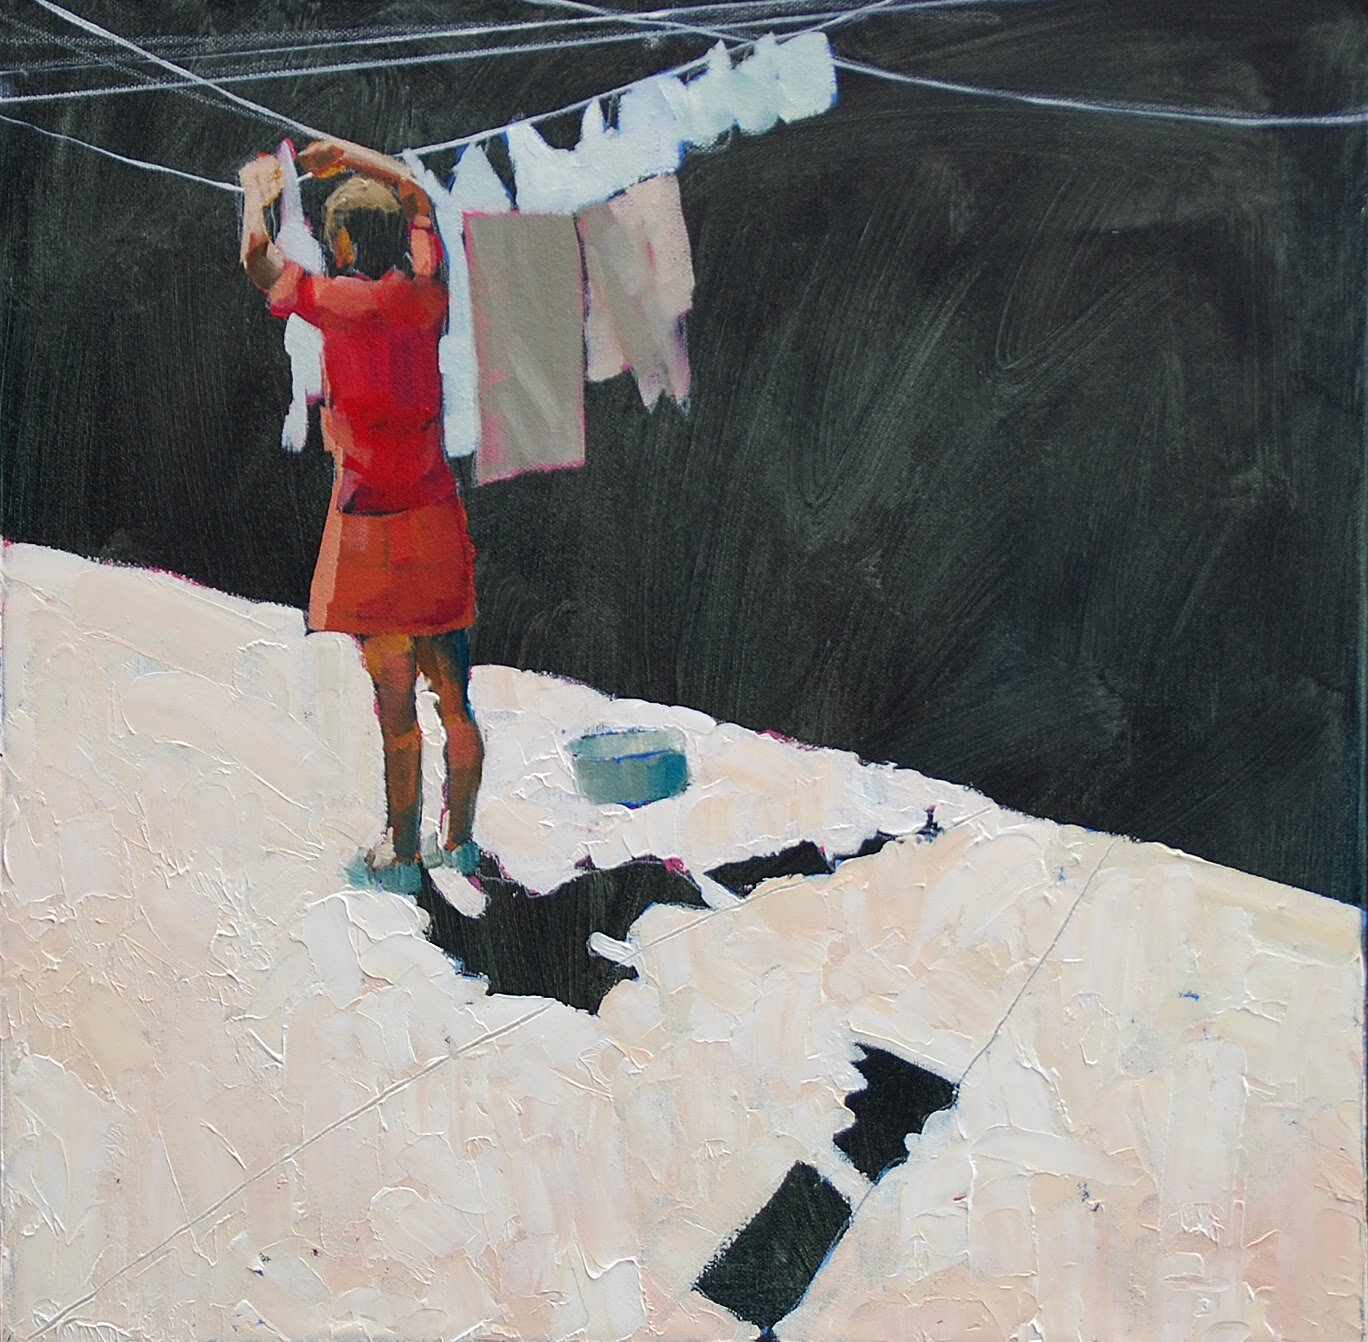 Artist: Amy Dury  Title: Washing  Size: 50 x 50 cm  Medium: Oil on canvas  Price: £600